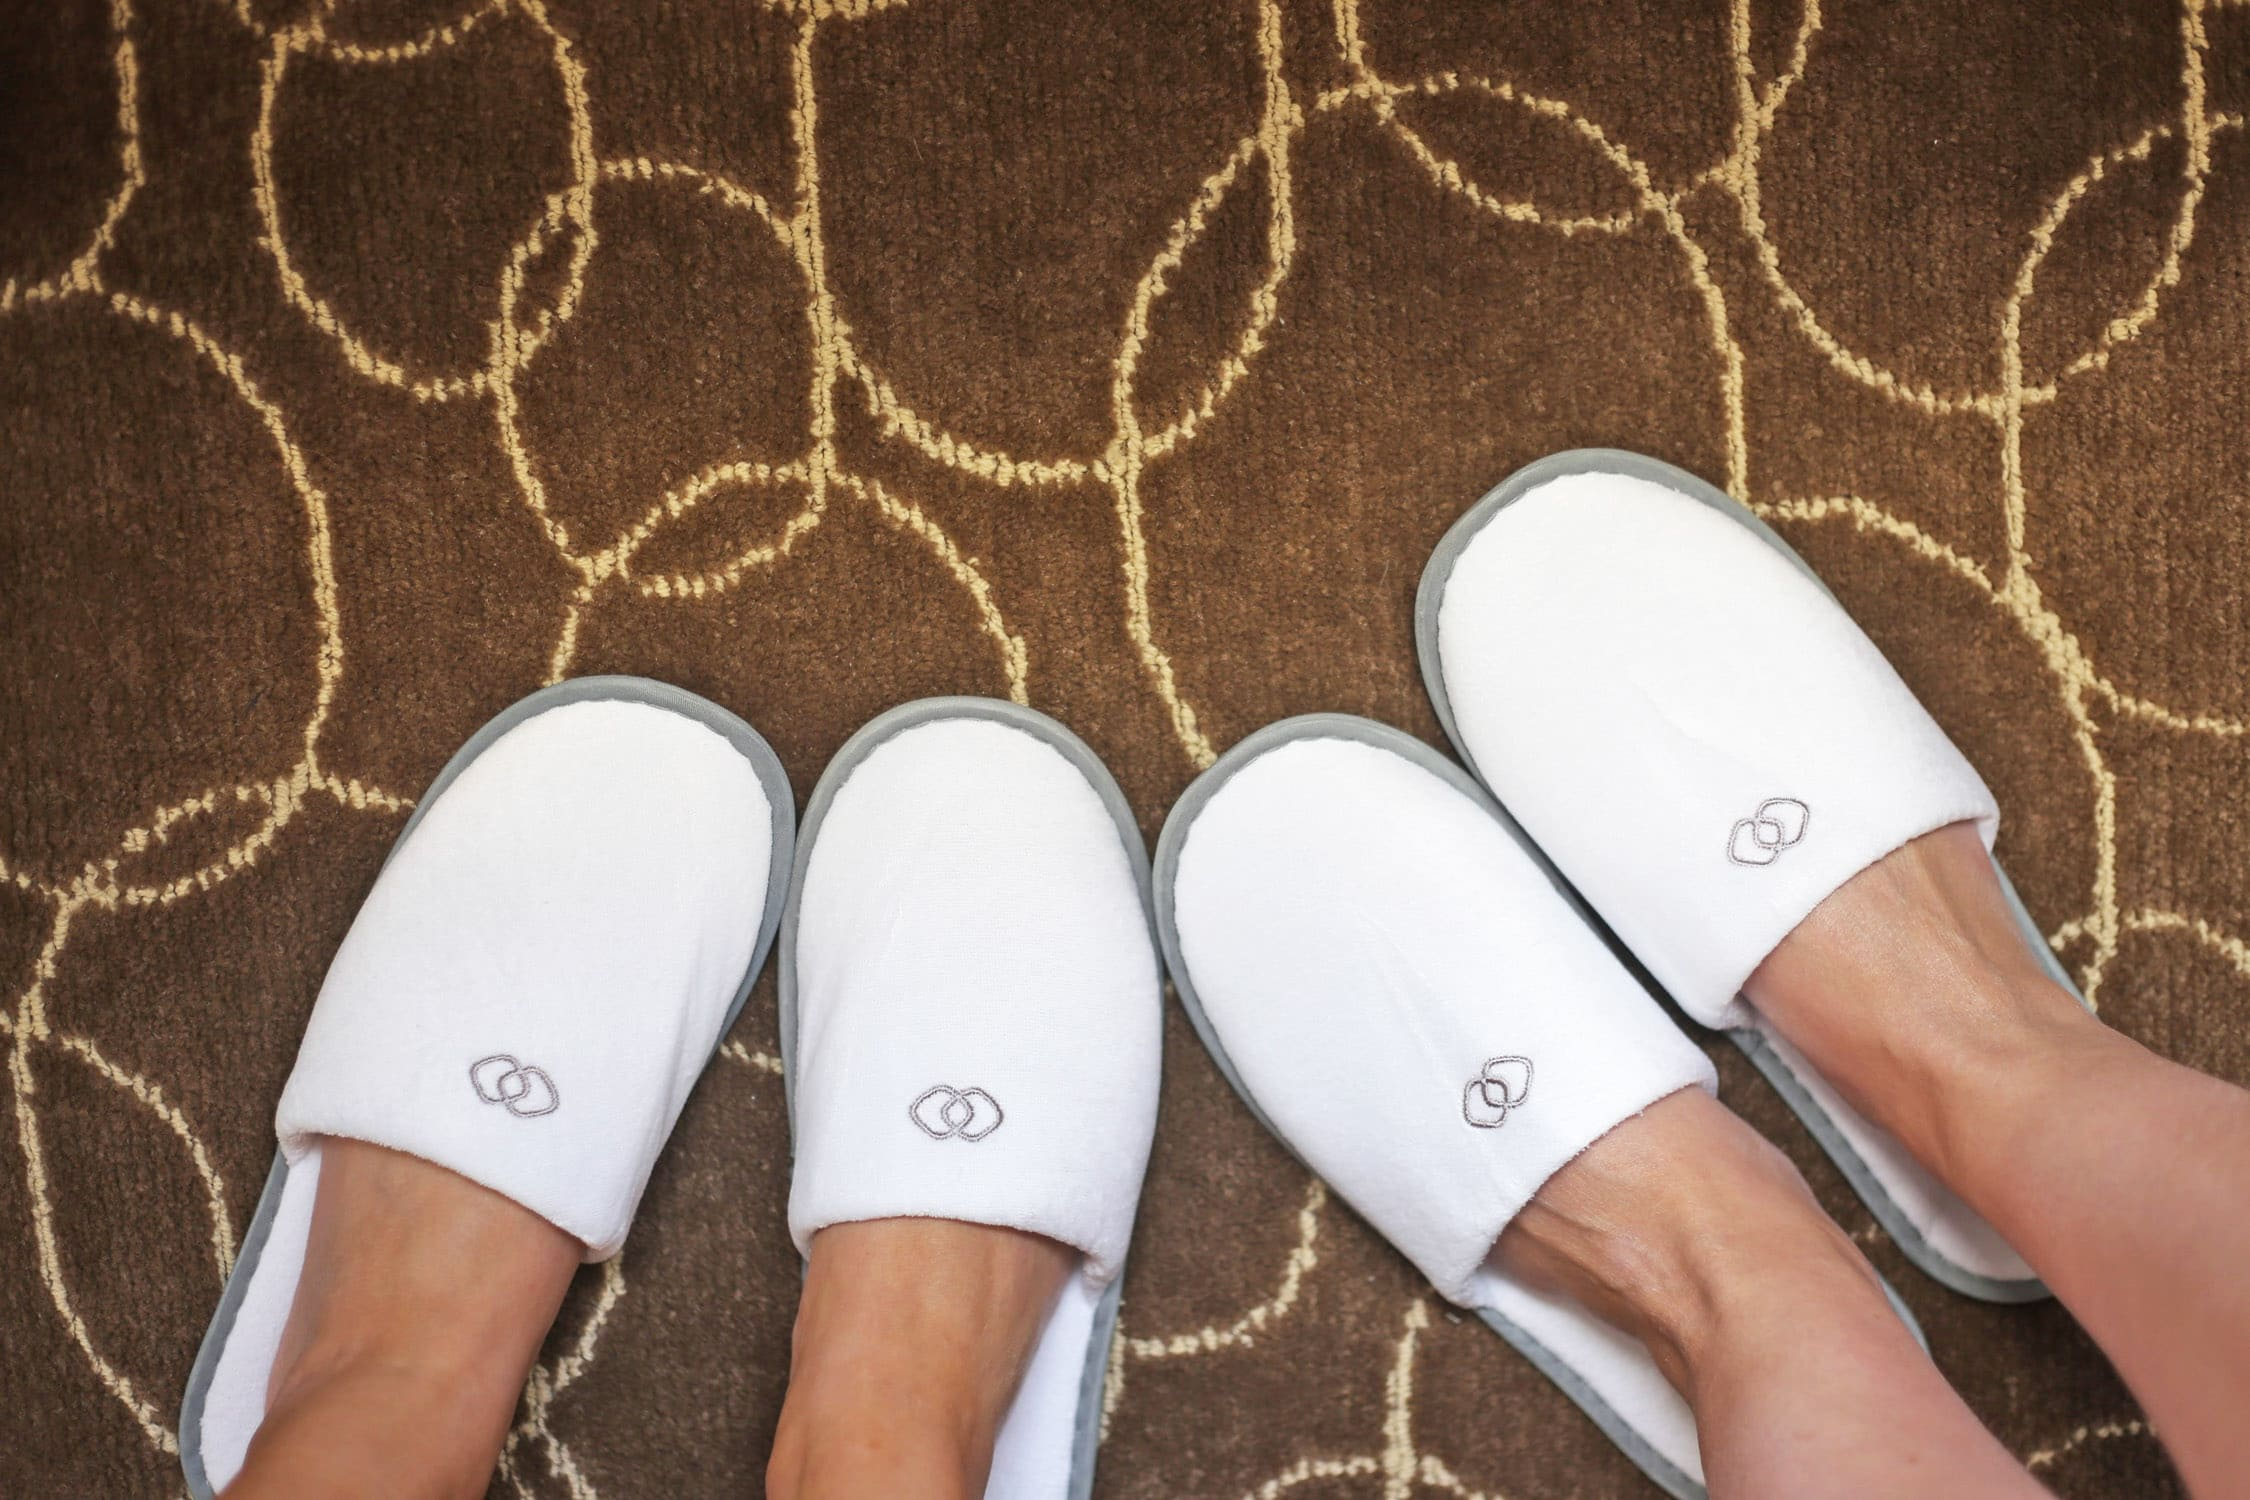 Fun girls' weekend at the Sofitel Los Angeles at Beverly Hills hotel